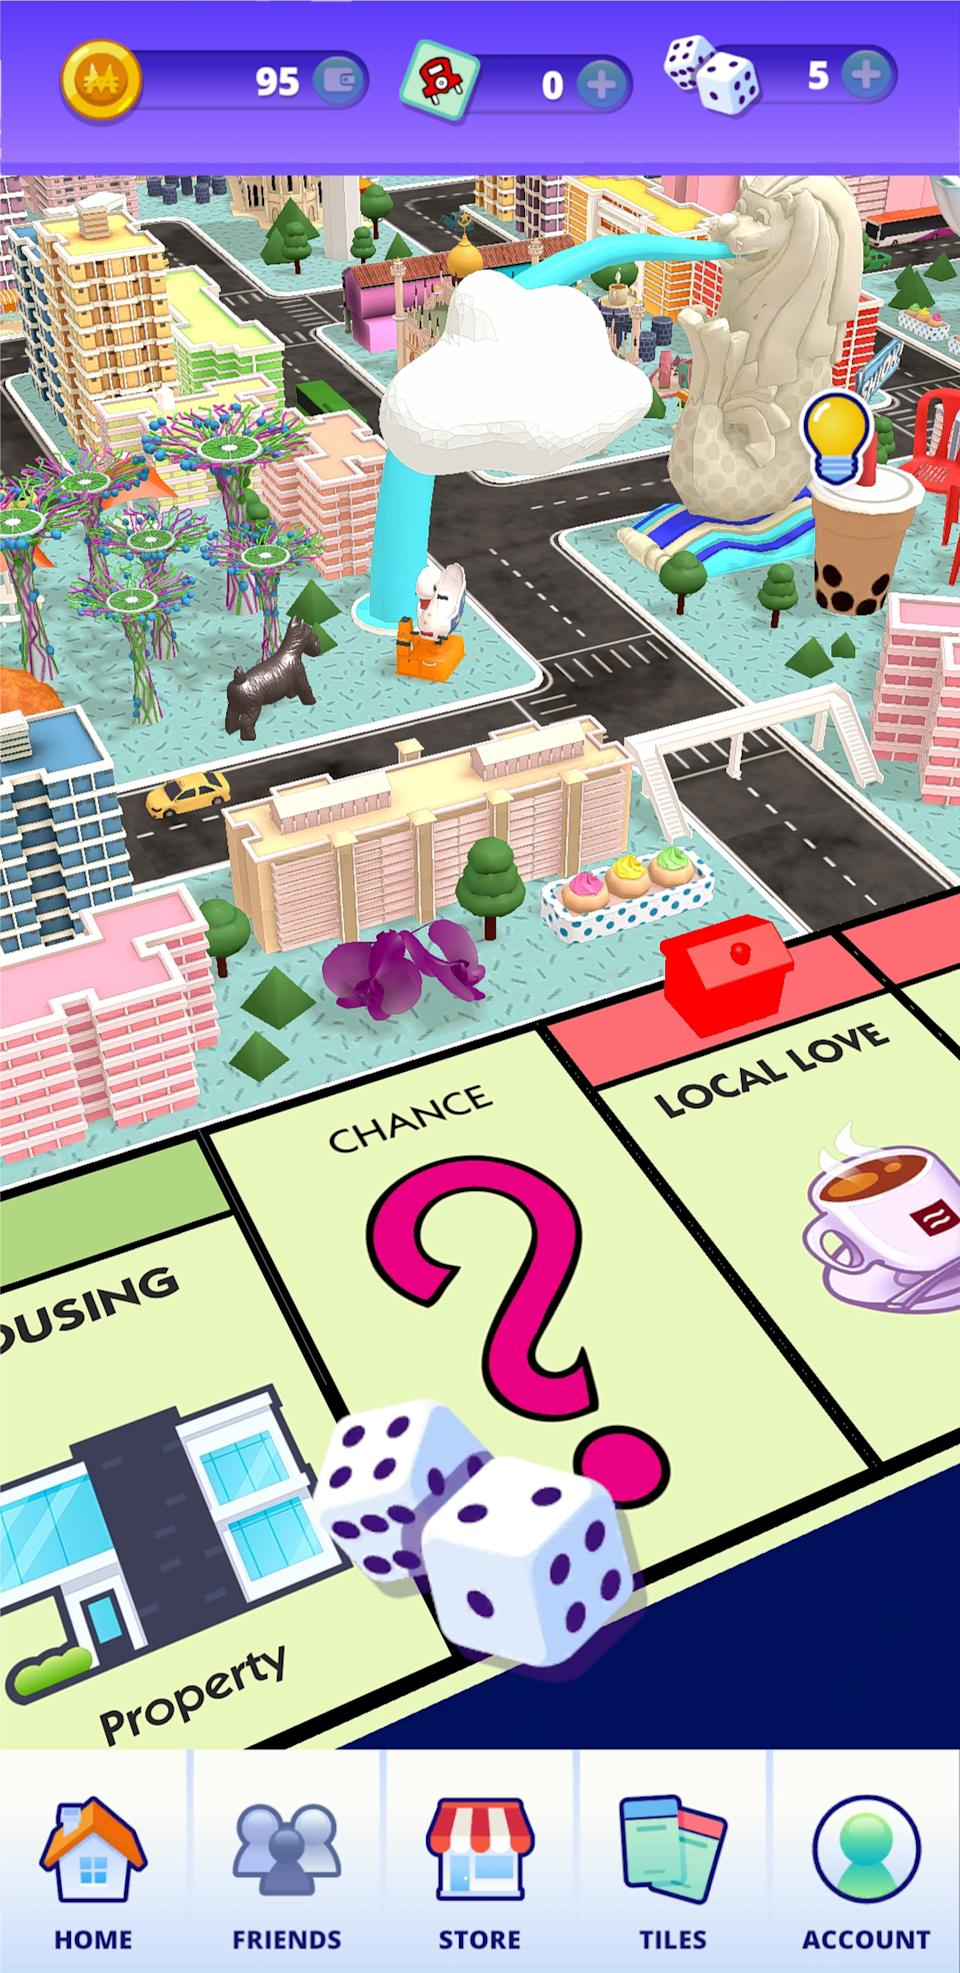 Monopoly Explore! SG (PHOTO: First Wave Agency)